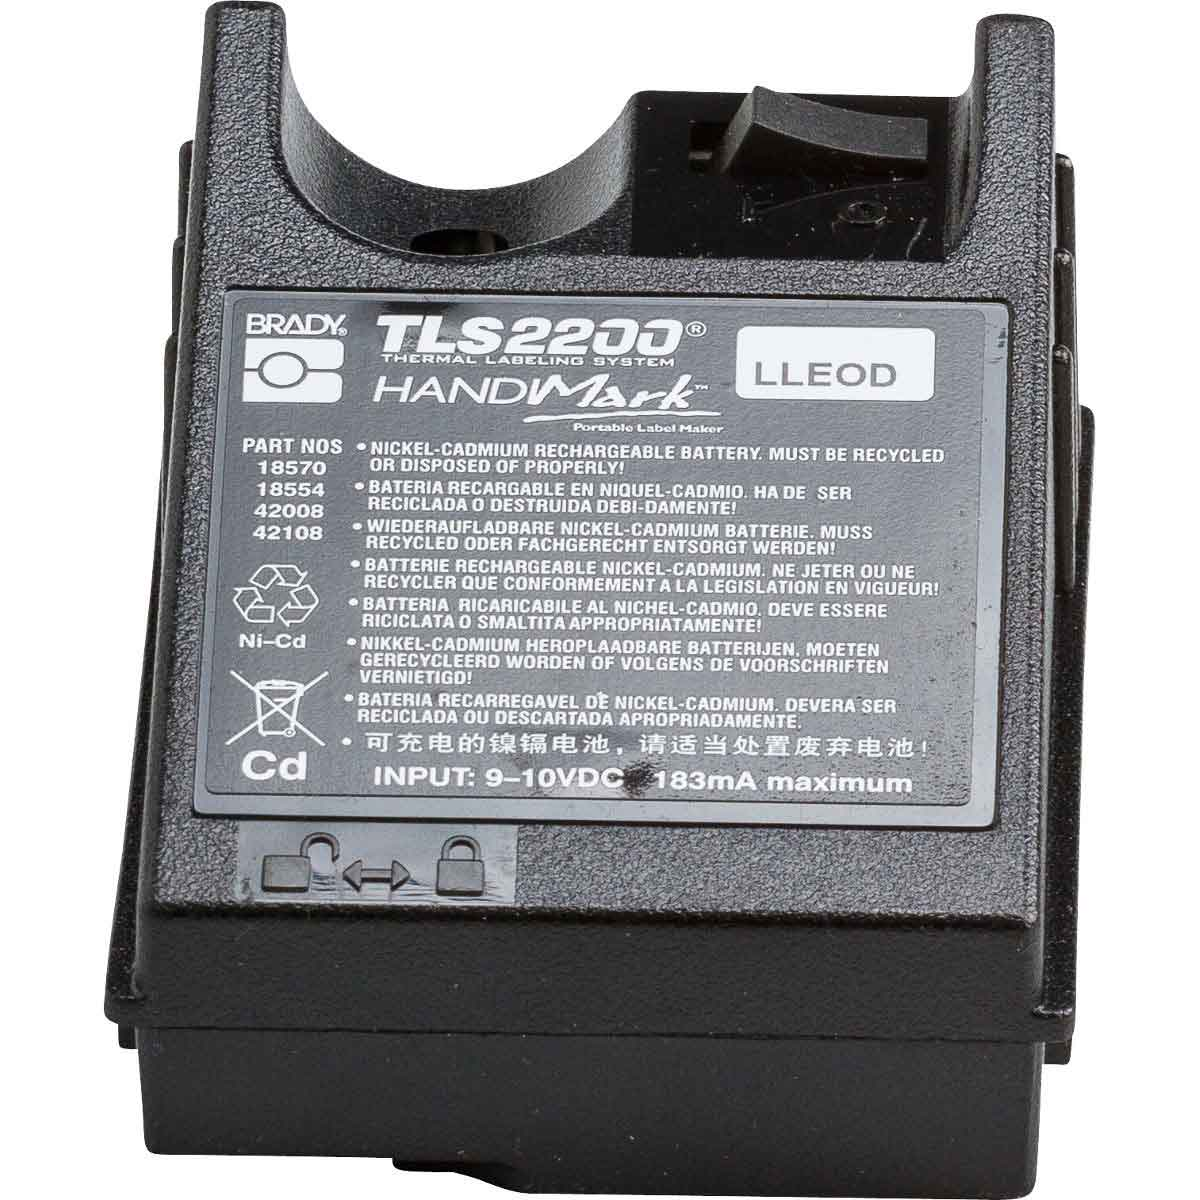 Brady Part M Batt 18554 Handimark Or Tls 2200 Simple Ni Cad Battery Charger With Little Parts Rechargeable Pack